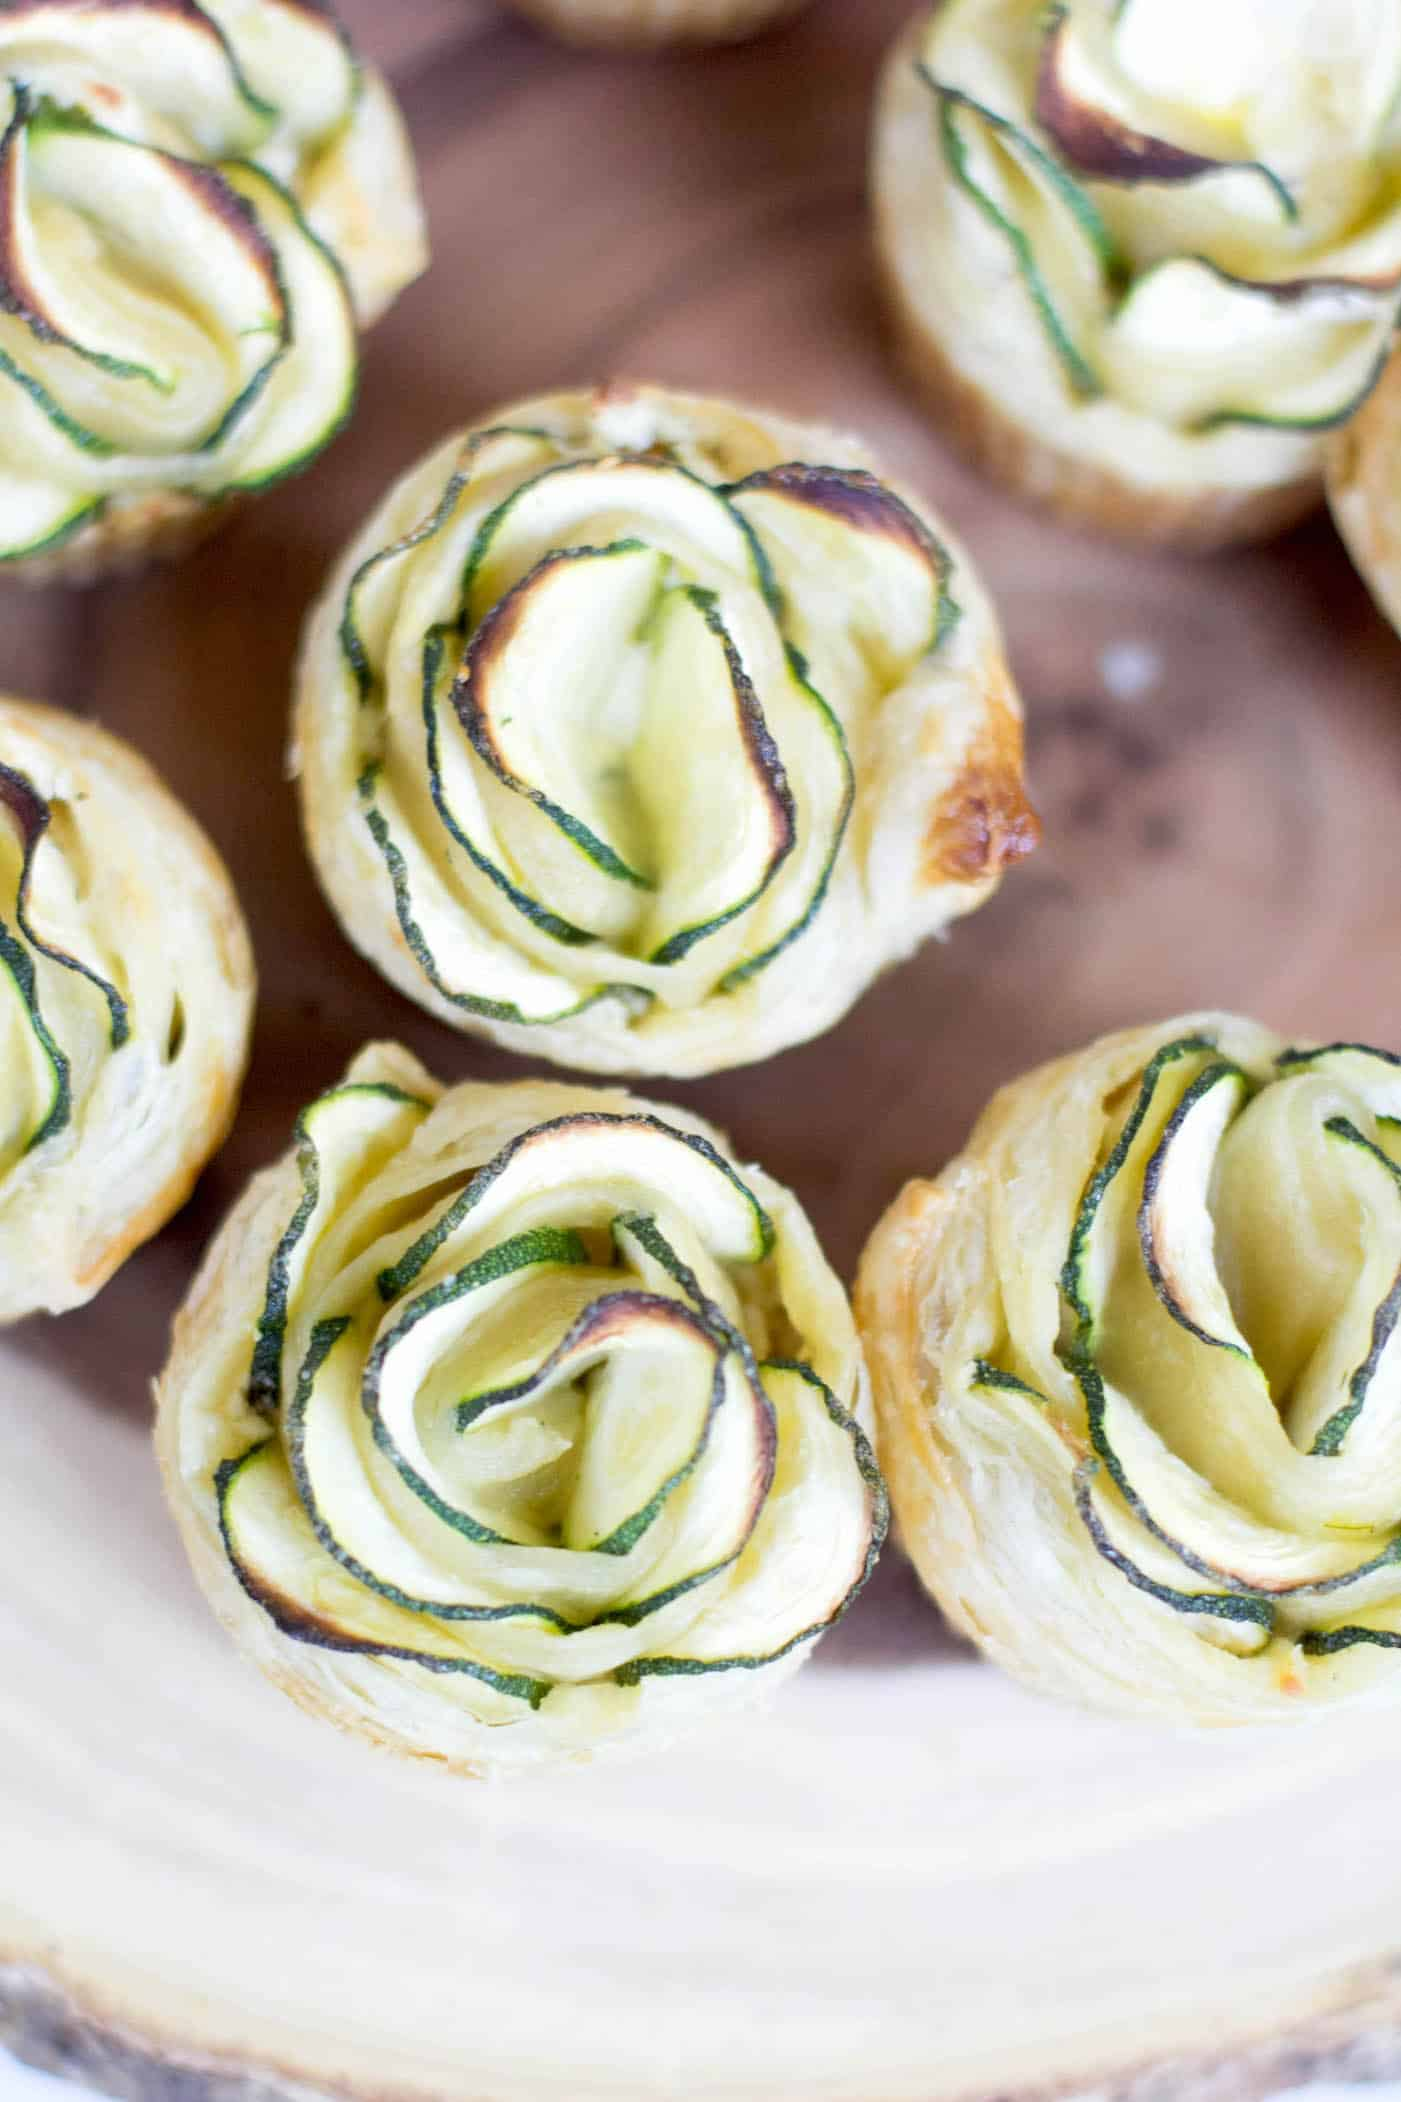 Puff pastry party appetizers shaped like flowers